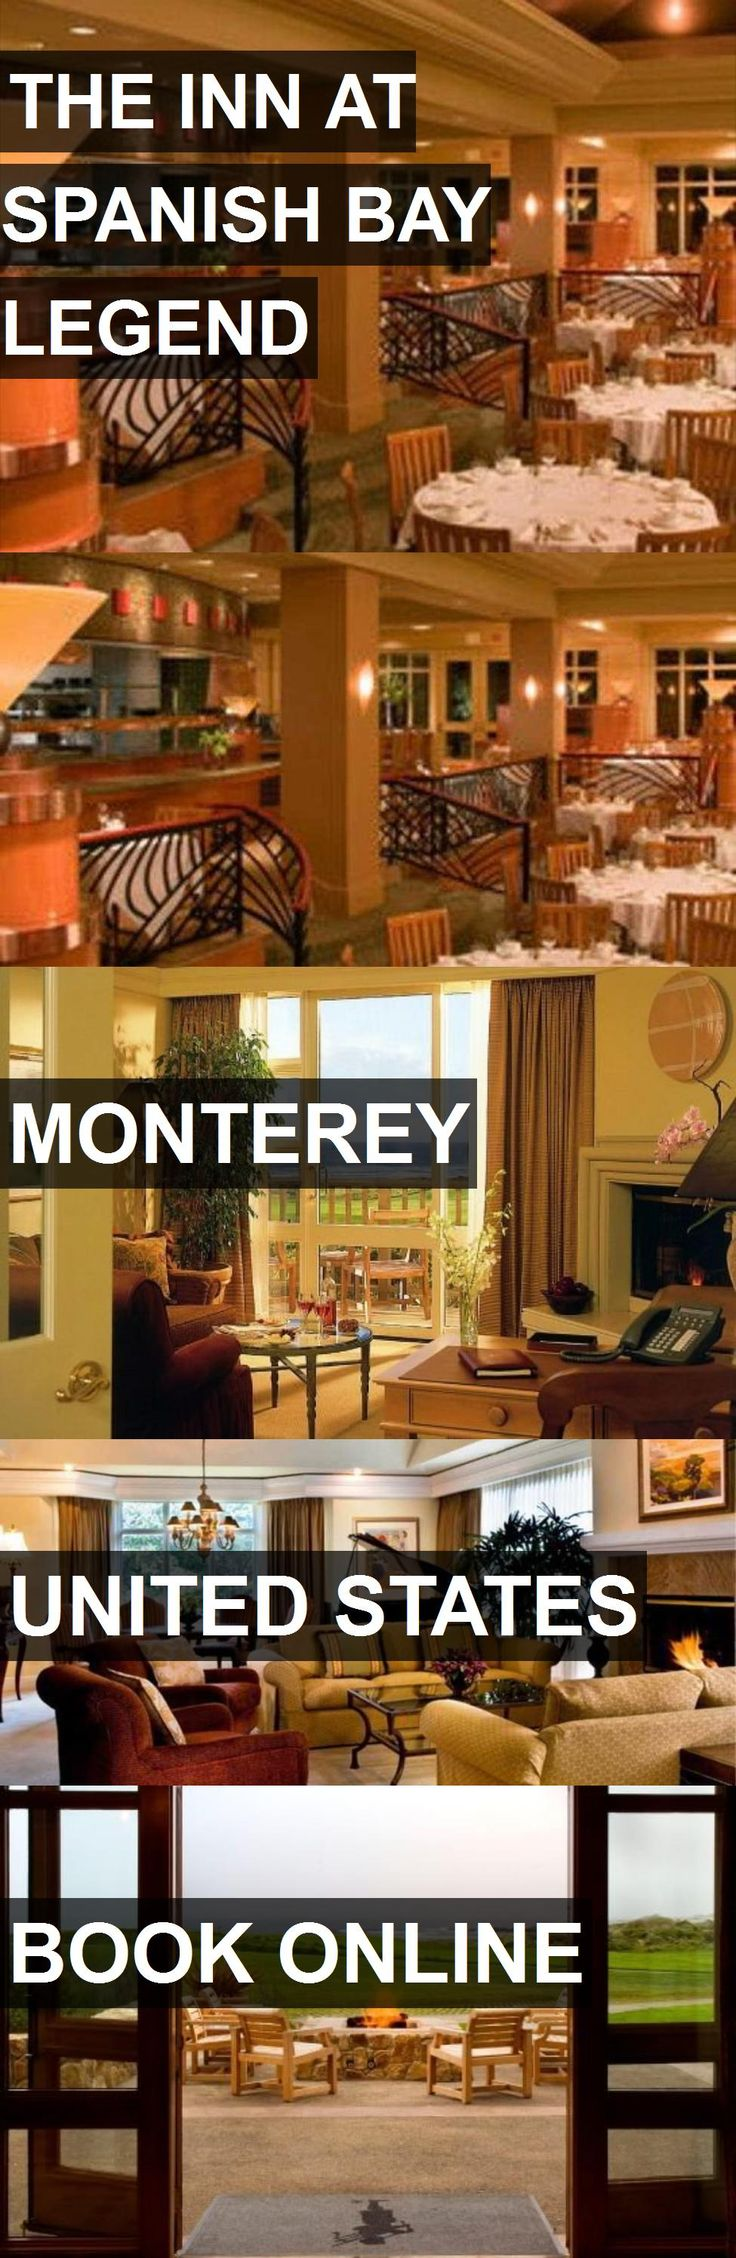 San Jose Monterey Map%0A Hotel THE INN AT SPANISH BAY LEGEND in Monterey  United States  For more  information